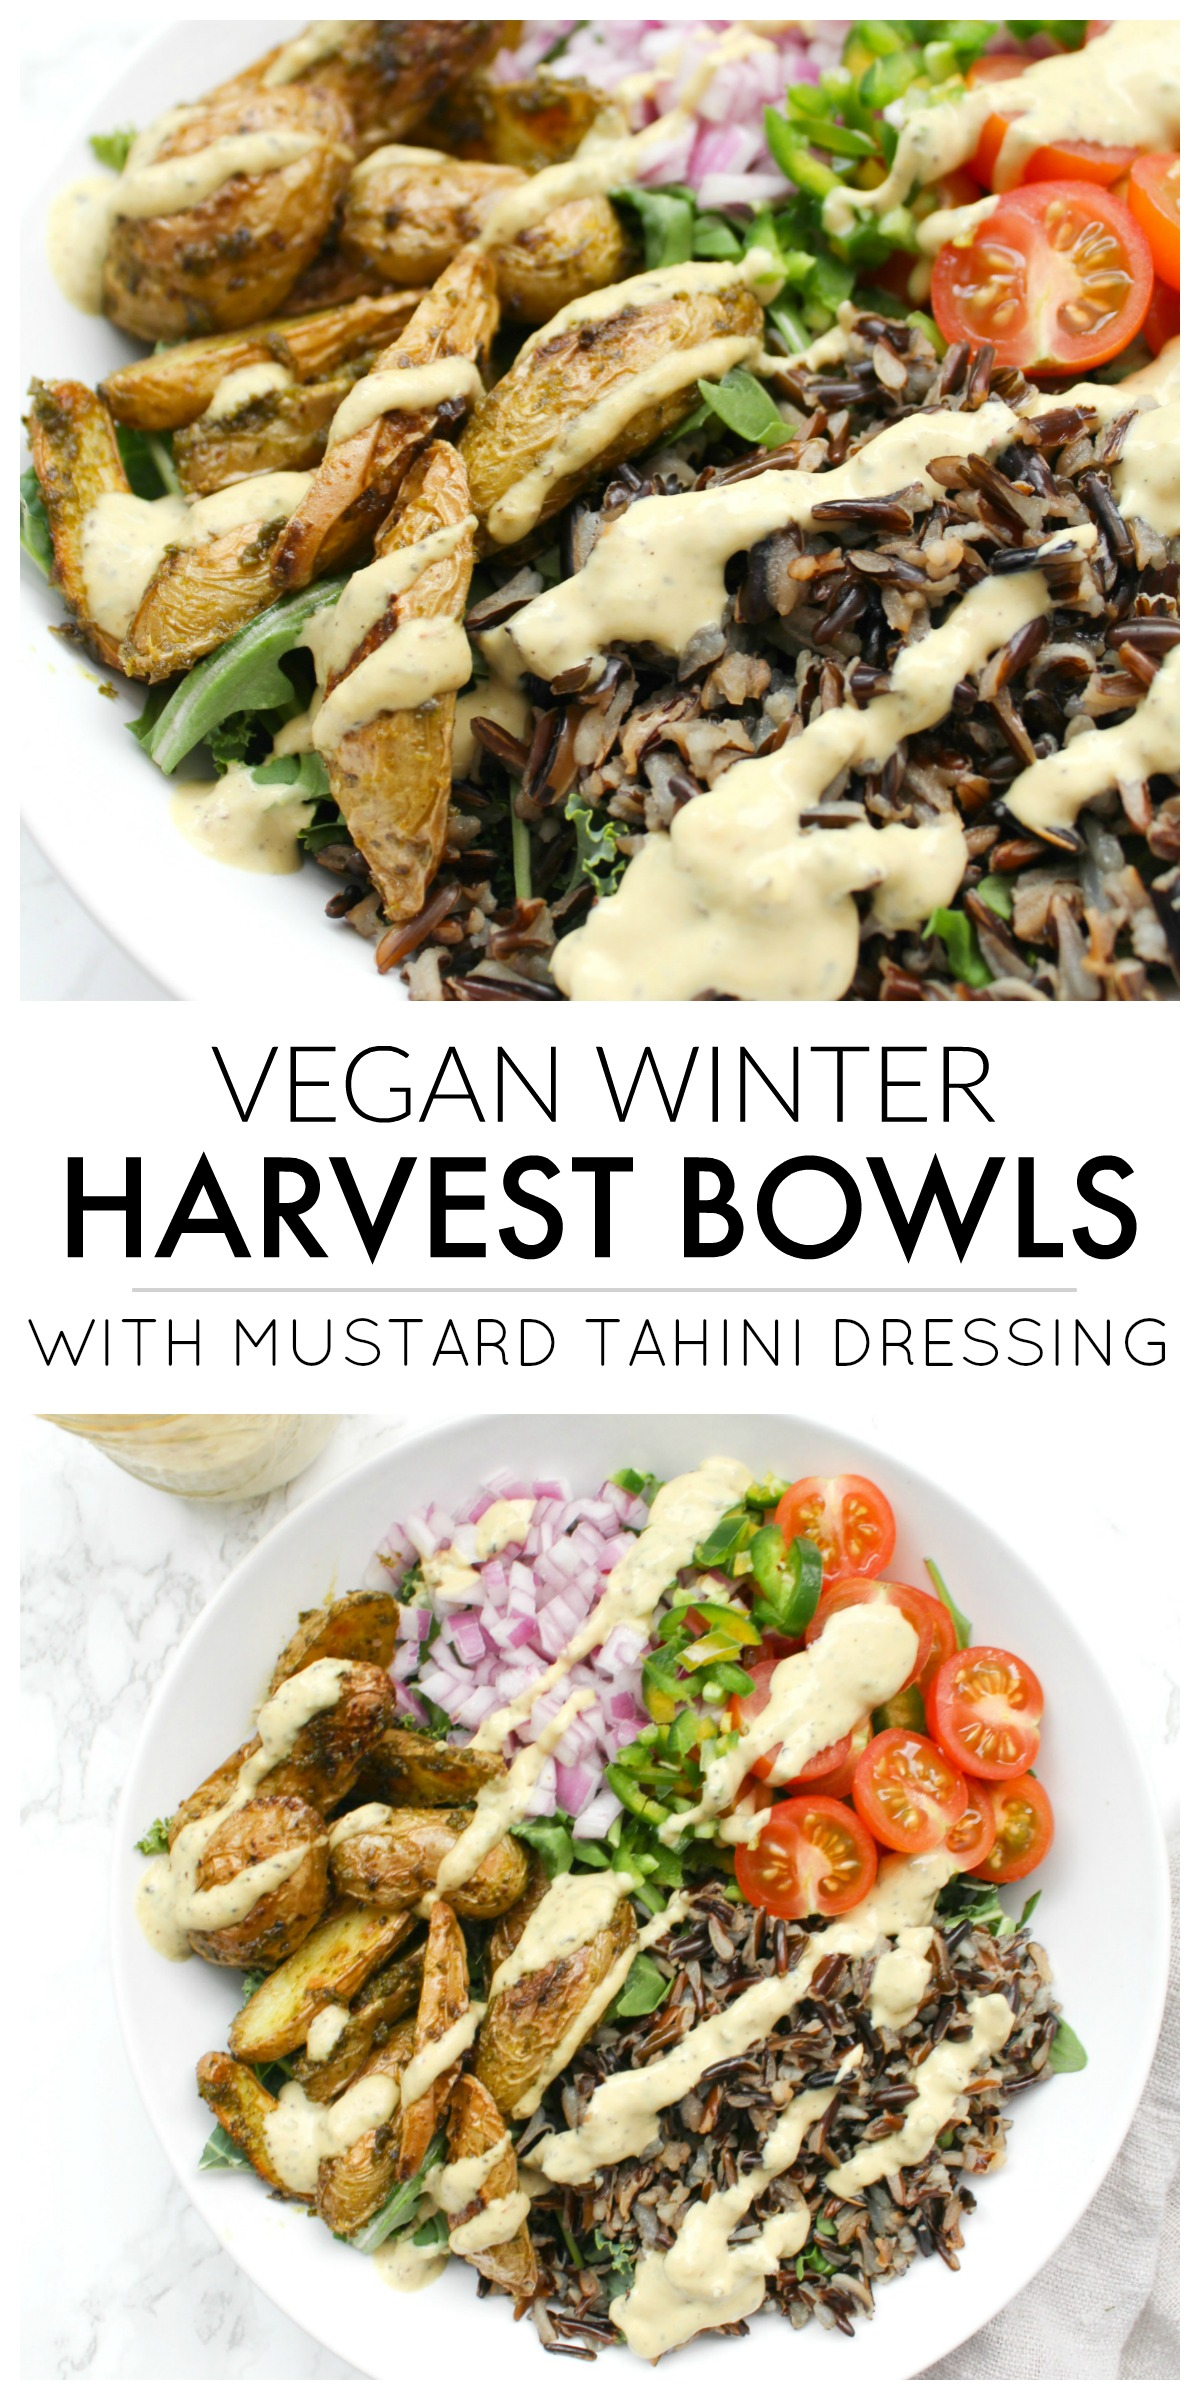 Both healthy and delicious, these Vegan Winter Harvest Bowls with Mustard Tahini Dressing are perfect for meal prepping   ThisSavoryVegan.com #thissavoryvegan #mealprep